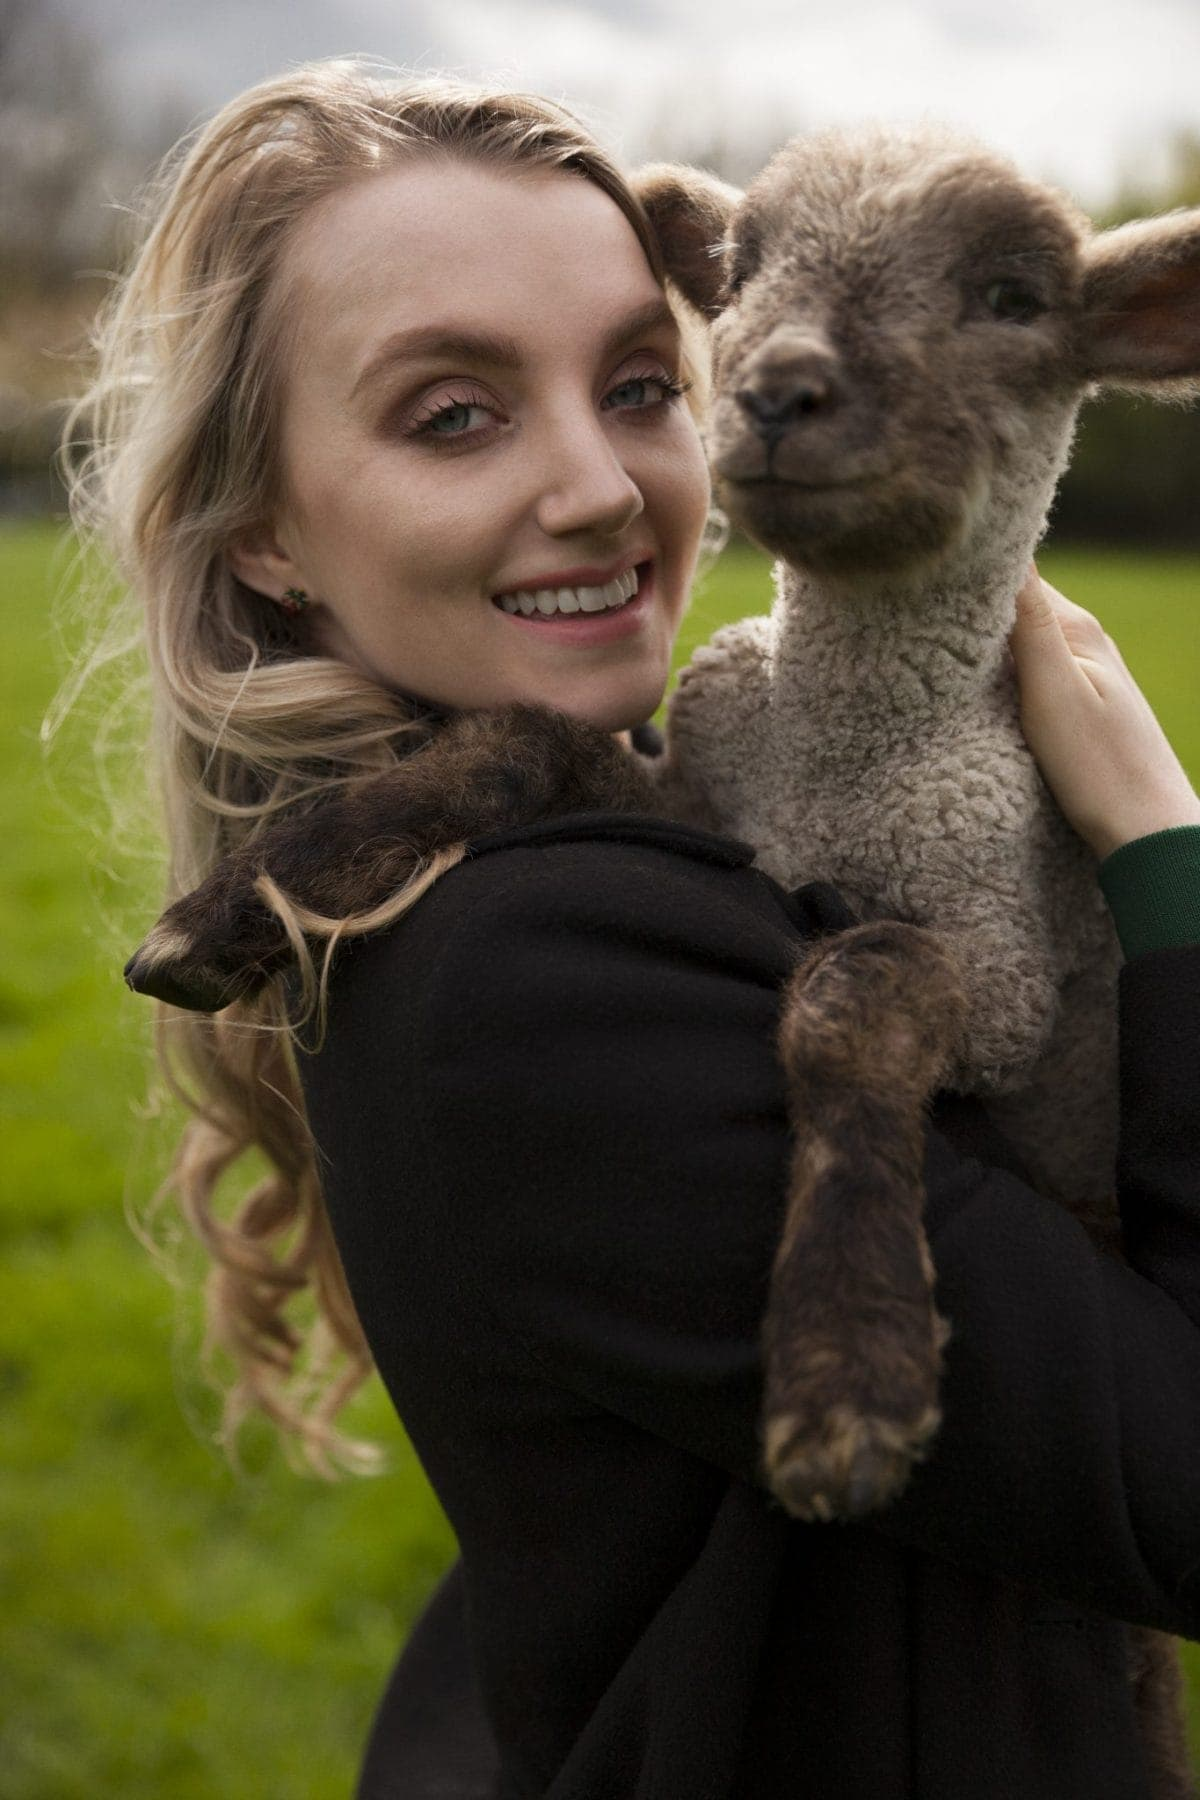 evanna lynch role model for new vegans and veg curious people